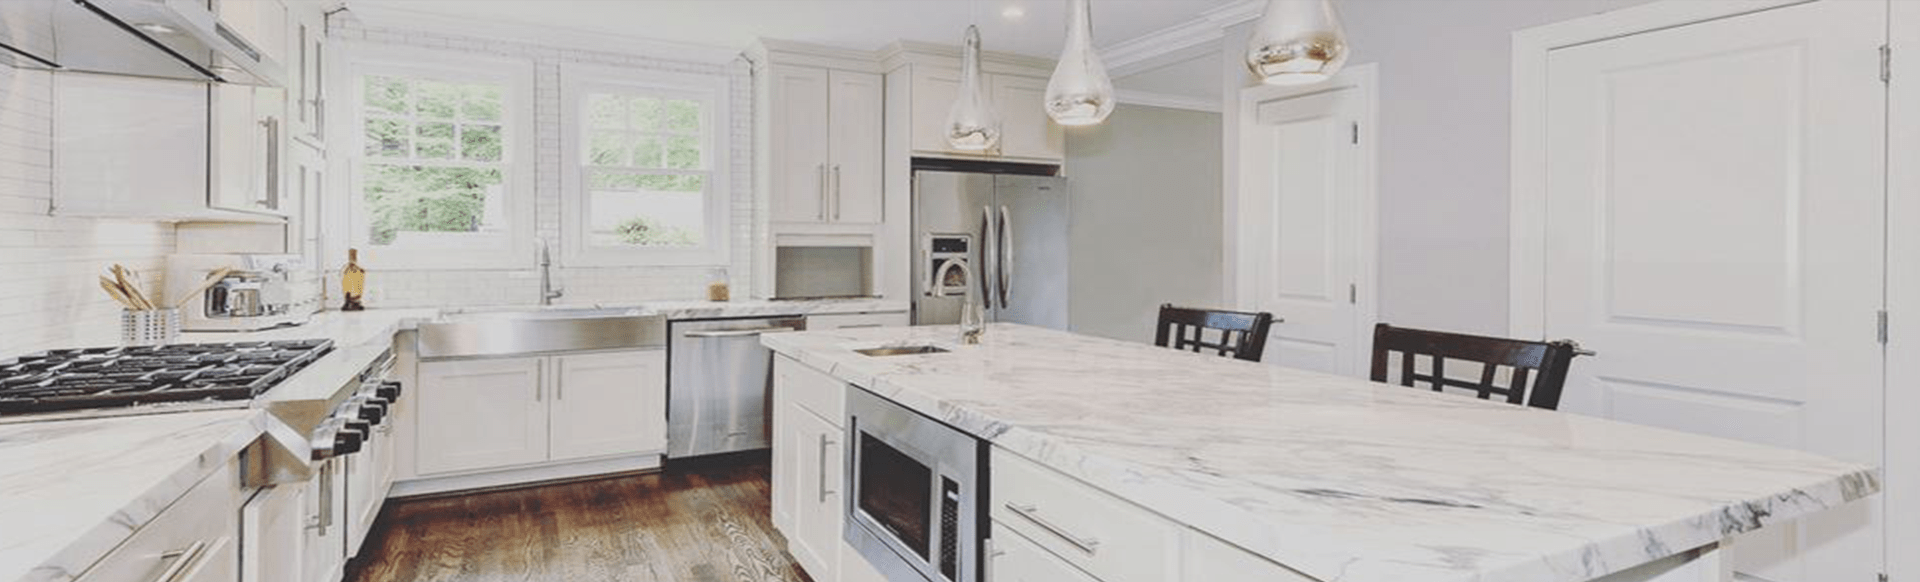 discount kitchen cabinets wholesale kitchen cabinets Discount kitchen bath cabinets for builders remodelers in Northeast Ohio